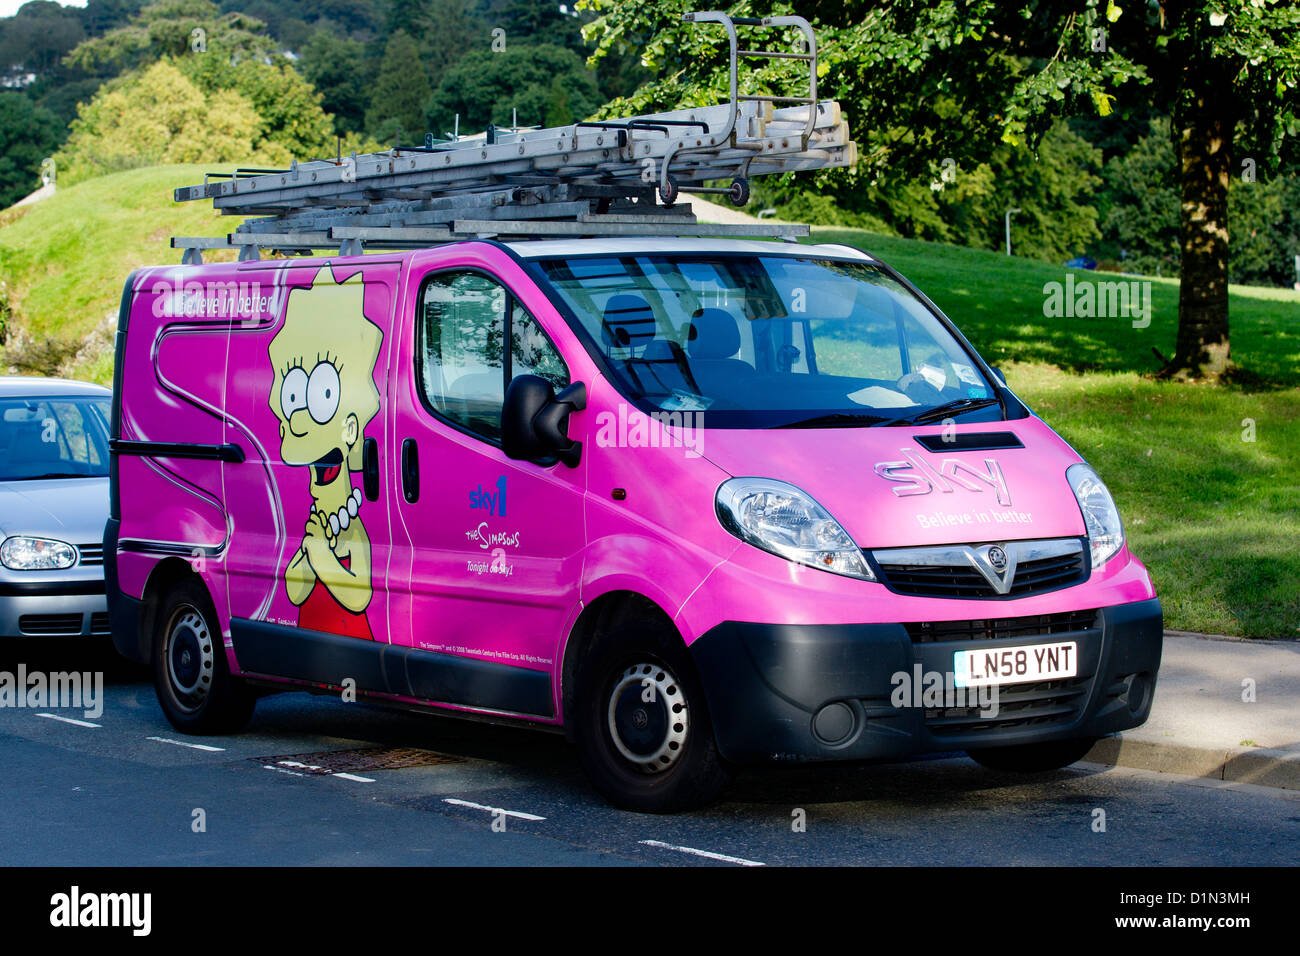 Sky 1 service - insulation van with advert for the Simpsons - Stock Image